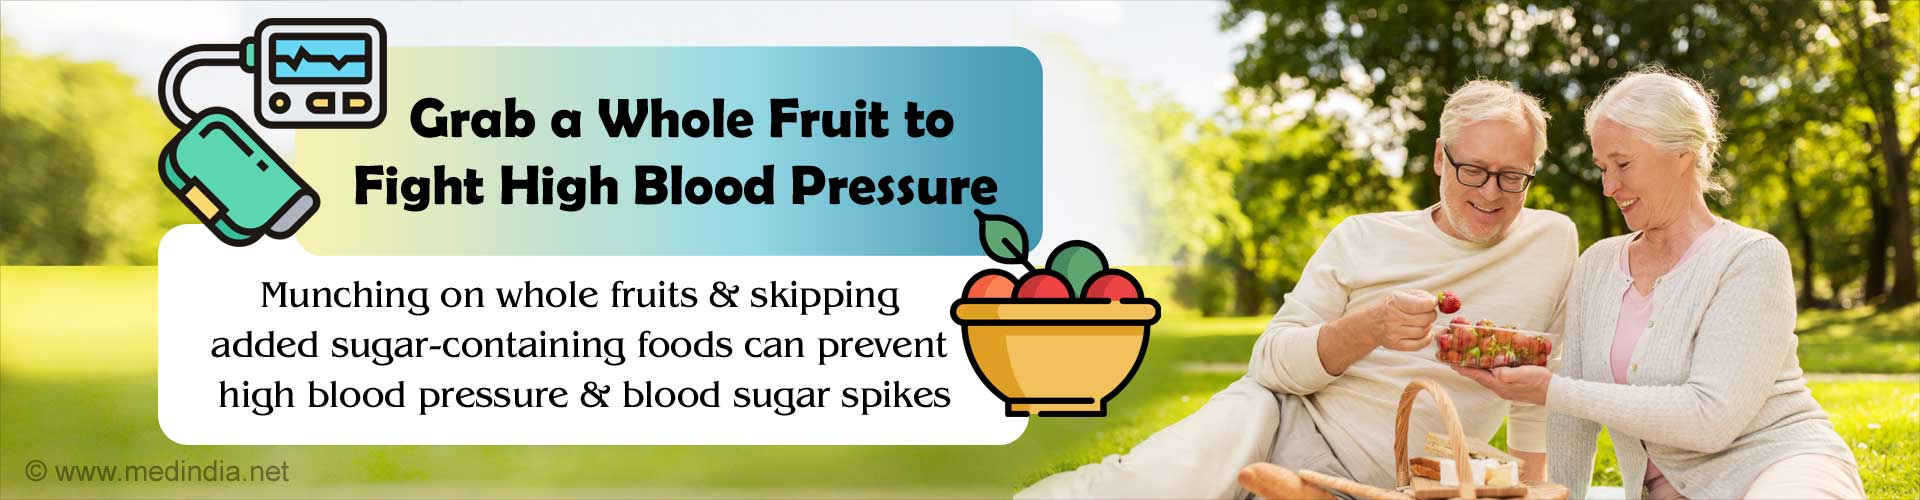 Grab a whole fruit to fight high blood pressure. Munching on whole fruits and skipping added sugar-containing foods can prevent high blood pressure and blood sugar spikes.